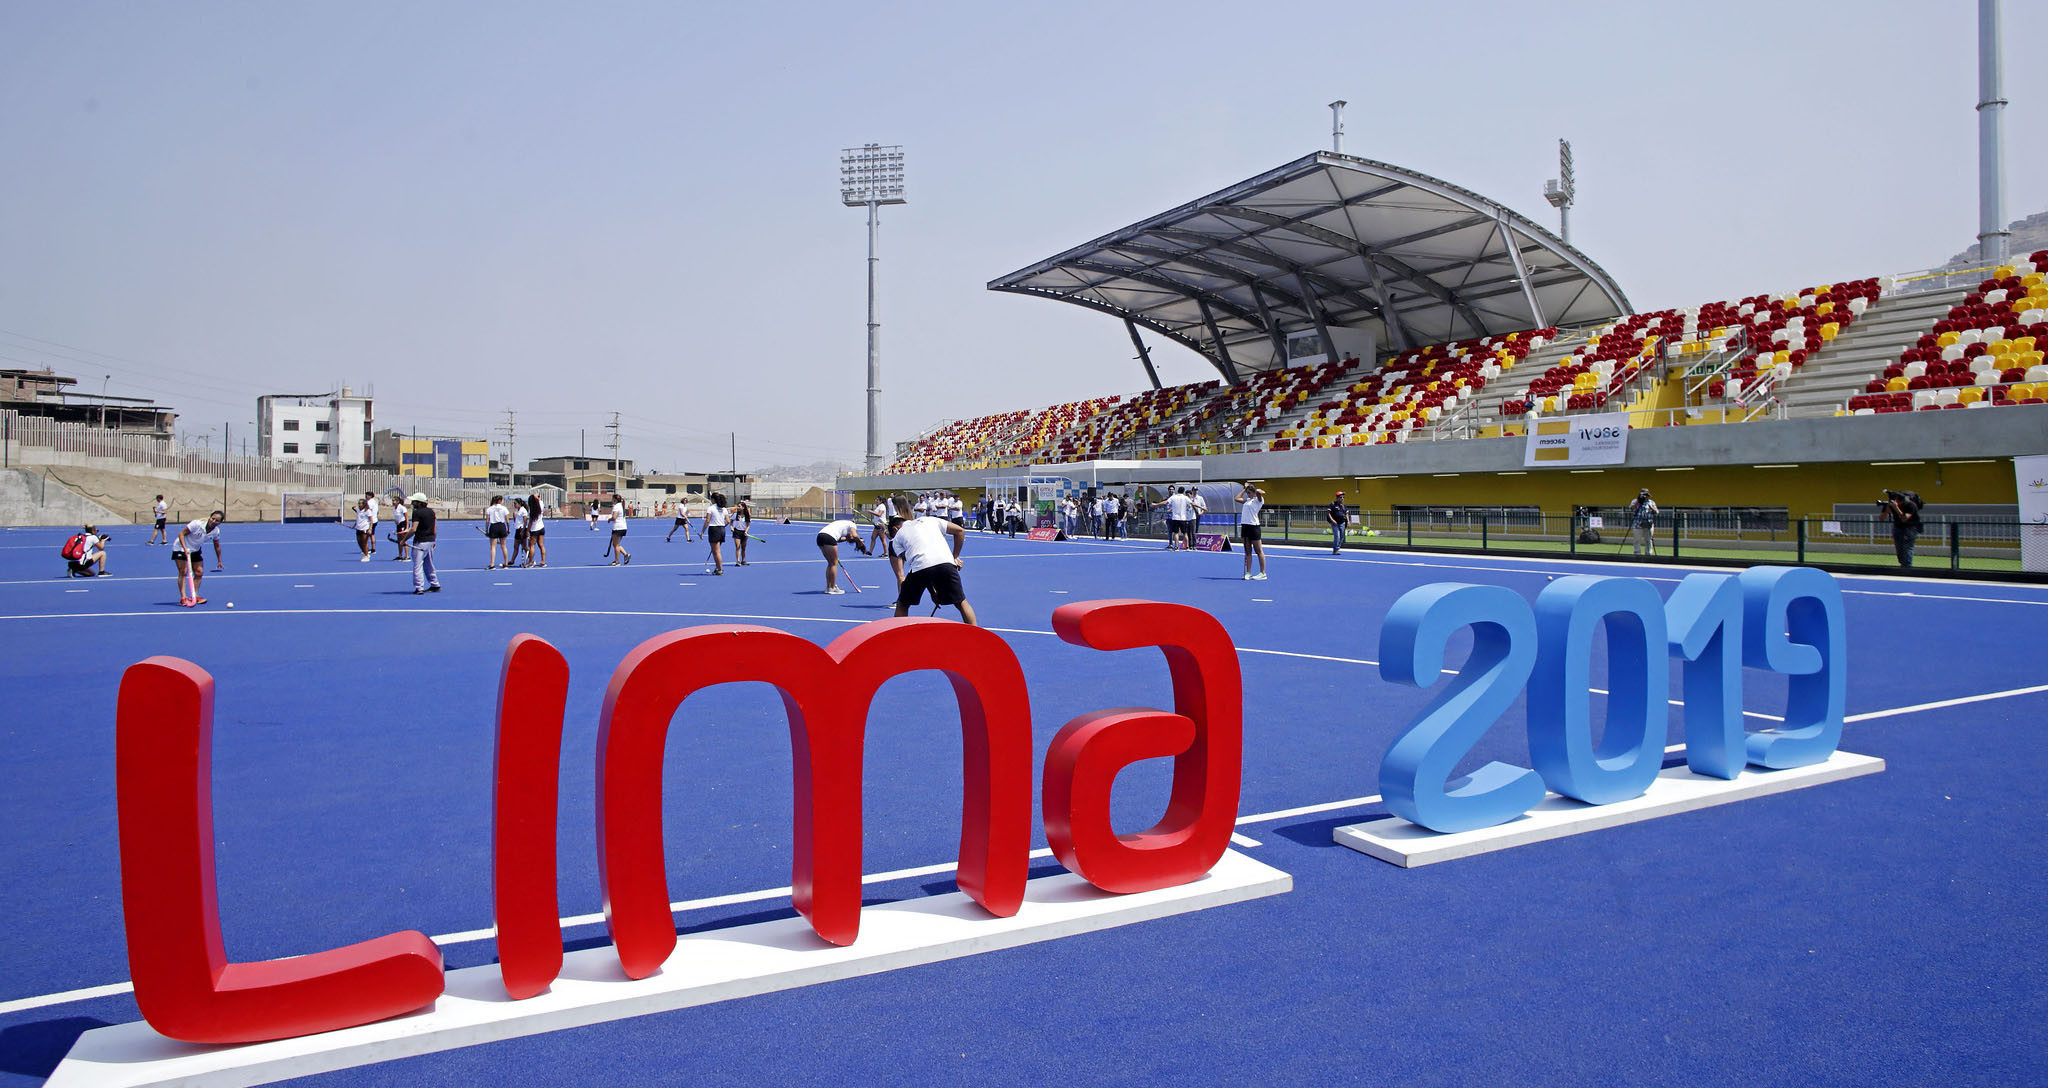 Seats for sporting events, and the Opening and Closing Ceremonies, at the Games can be bought on the Lima 2019 website and at approved ticket outlets ©Lima 2019